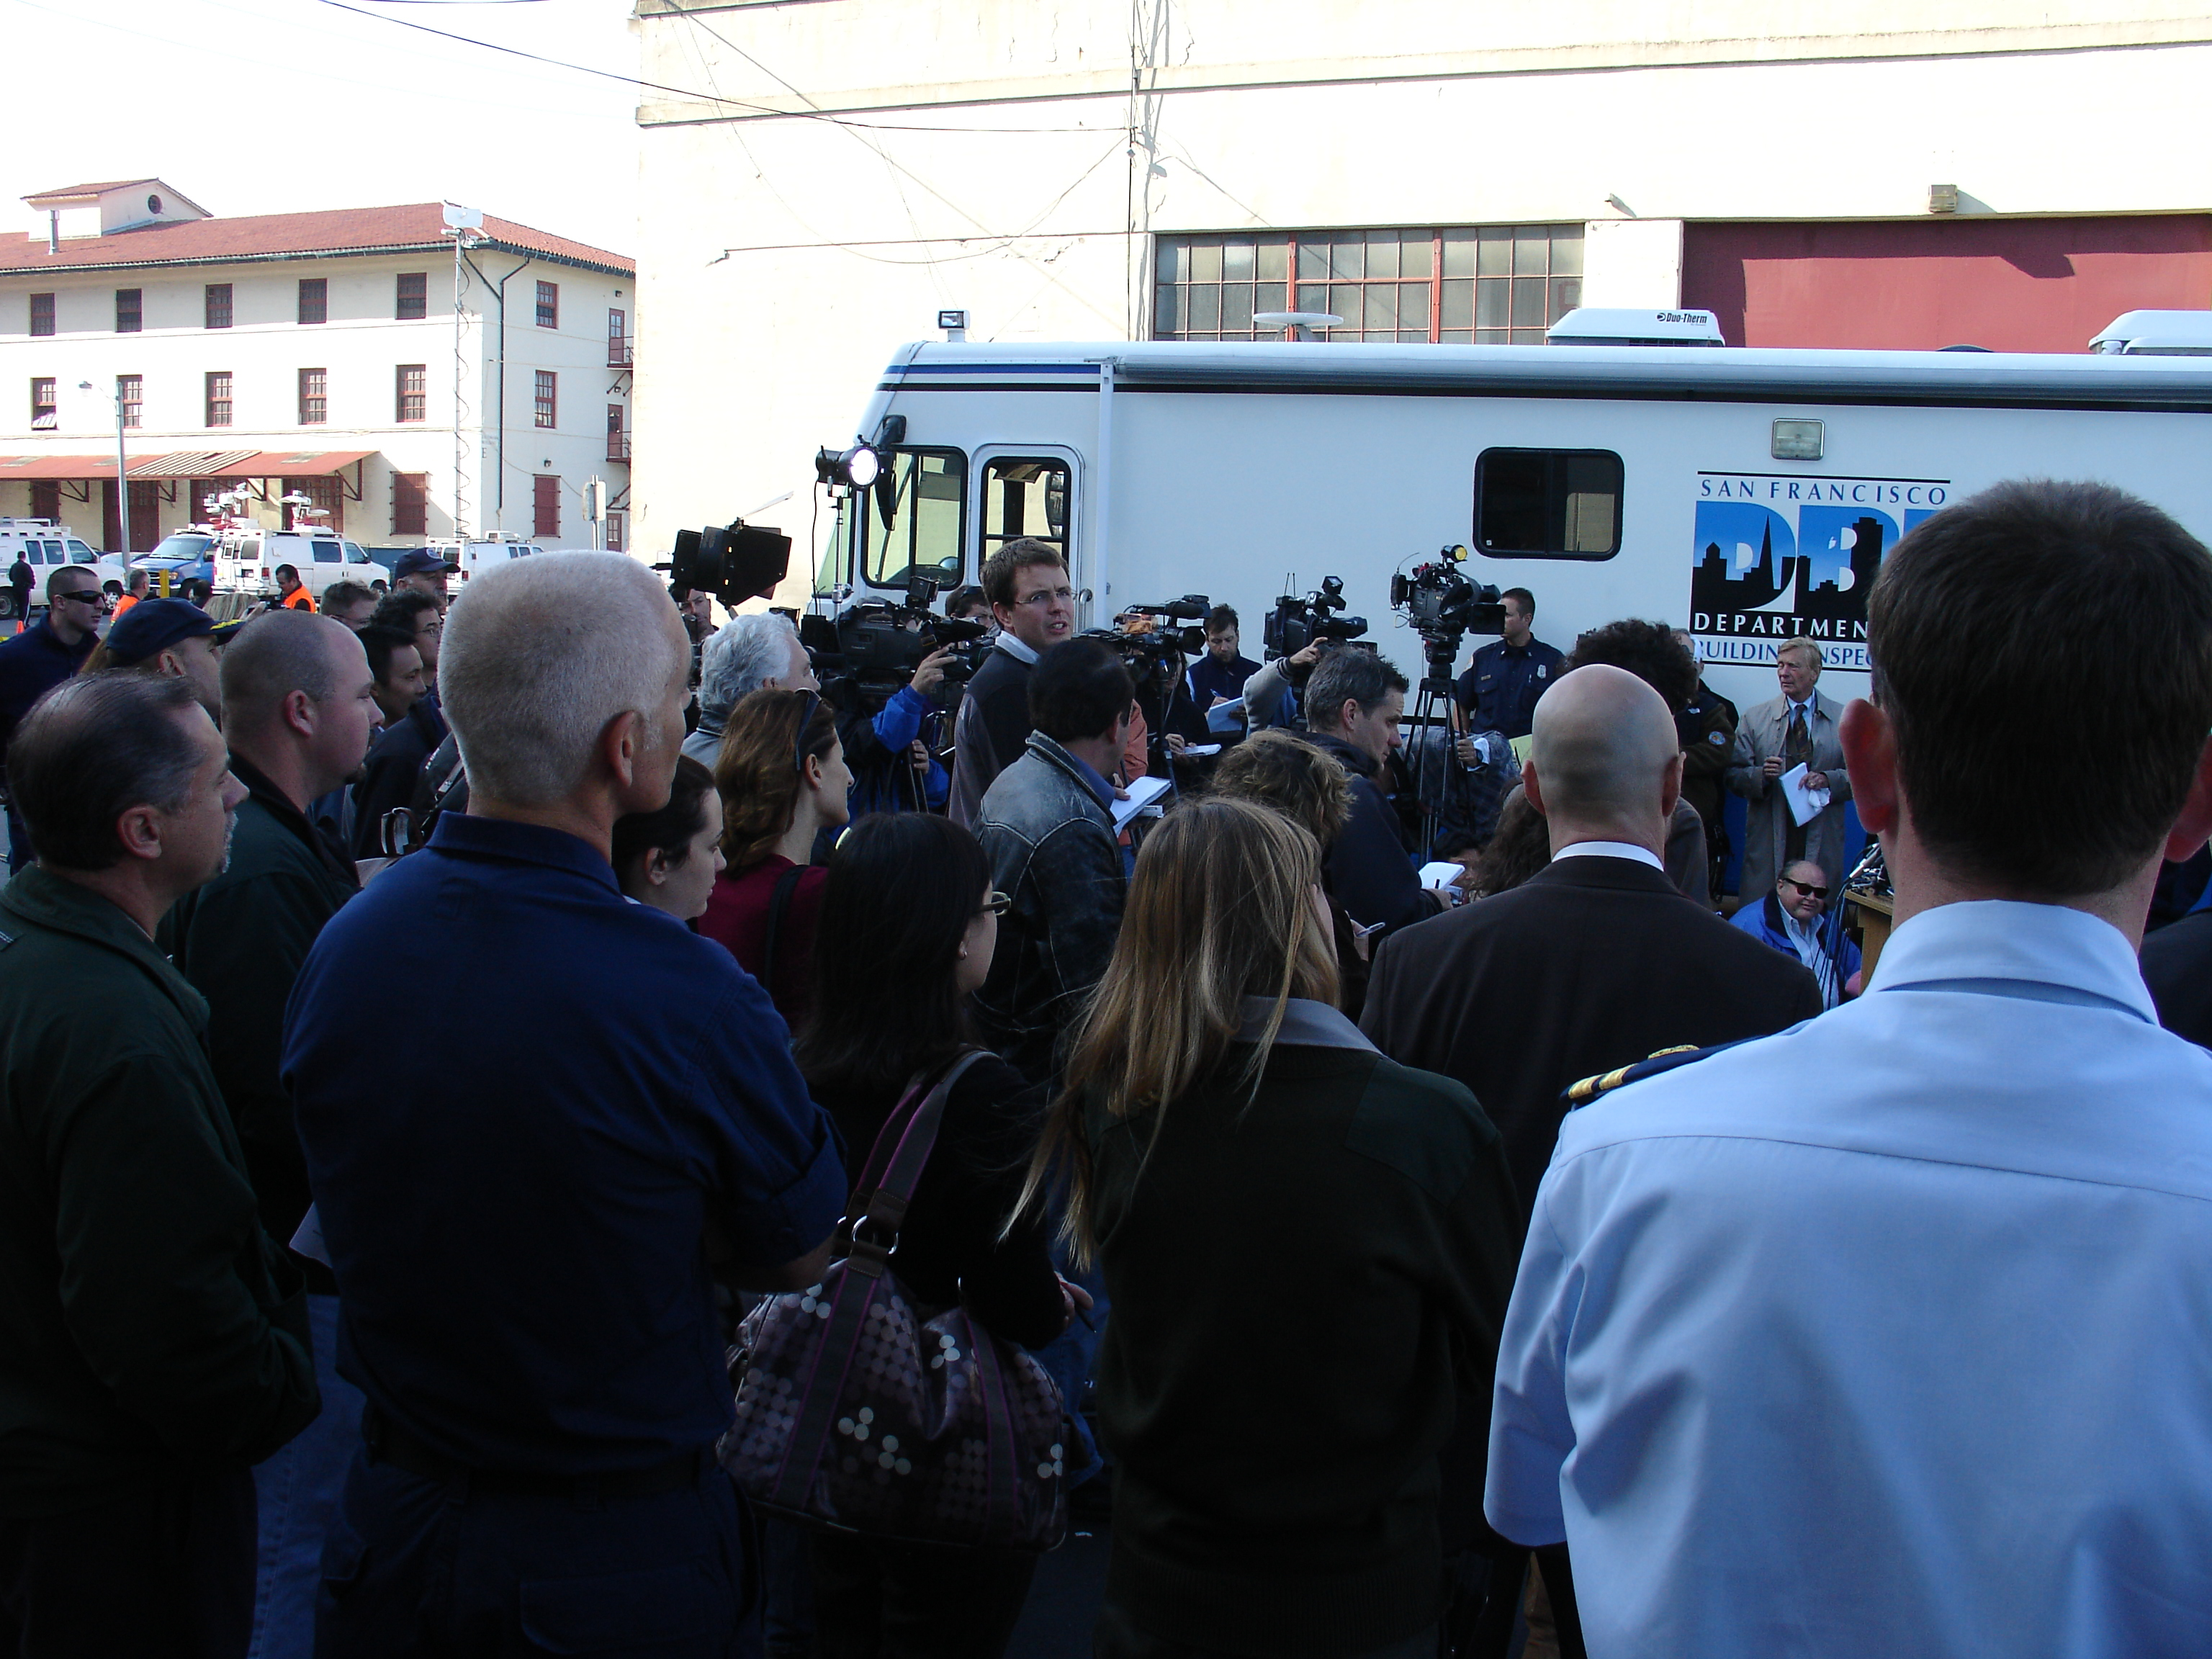 A group of people and press gather around a media vehicle.